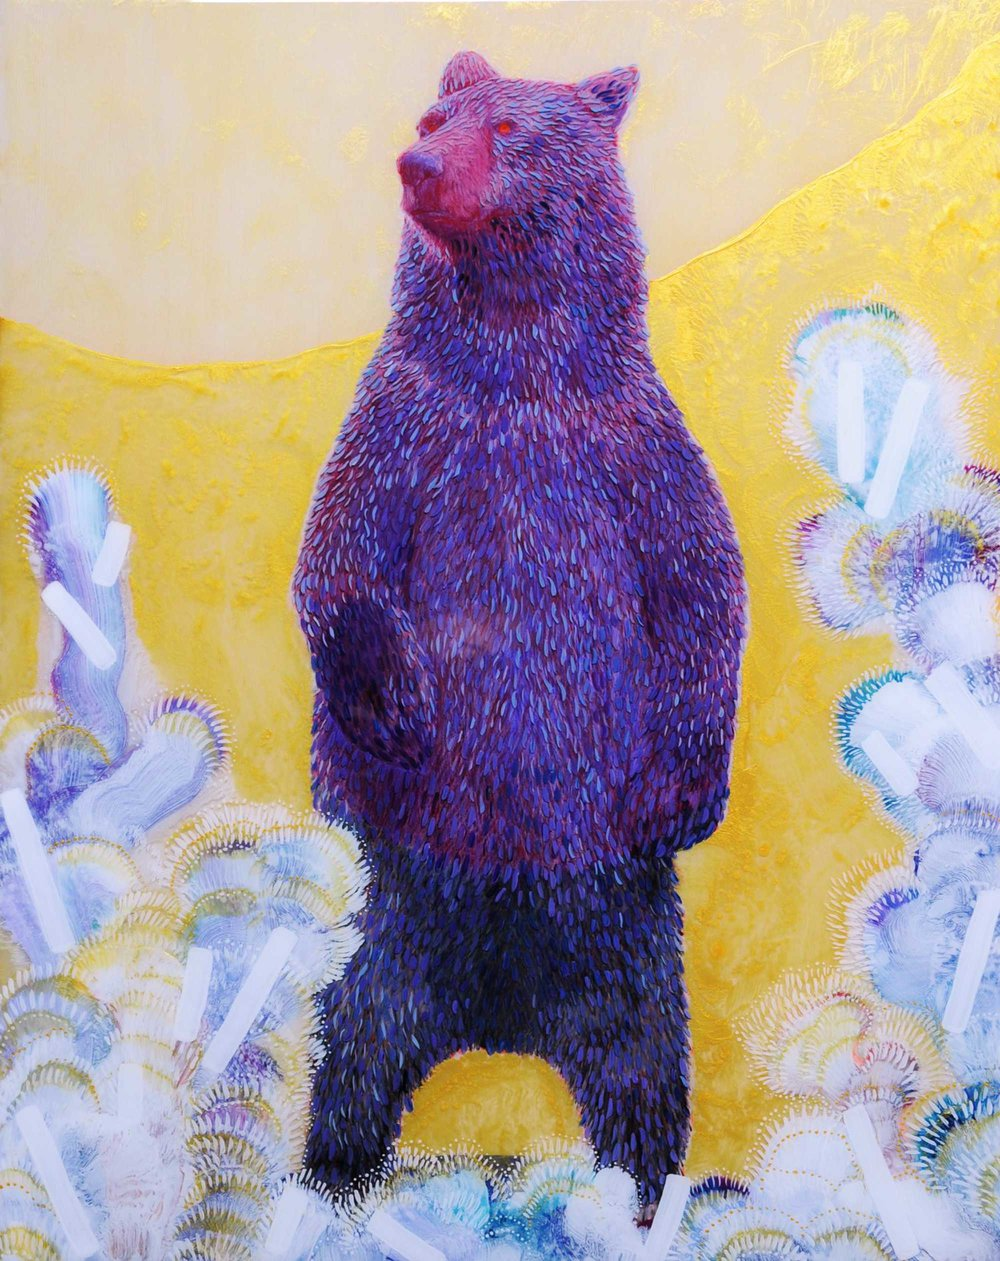 Standing Bear (II) , 2018. Acrylic and resin on wood panel, 20x16 inches